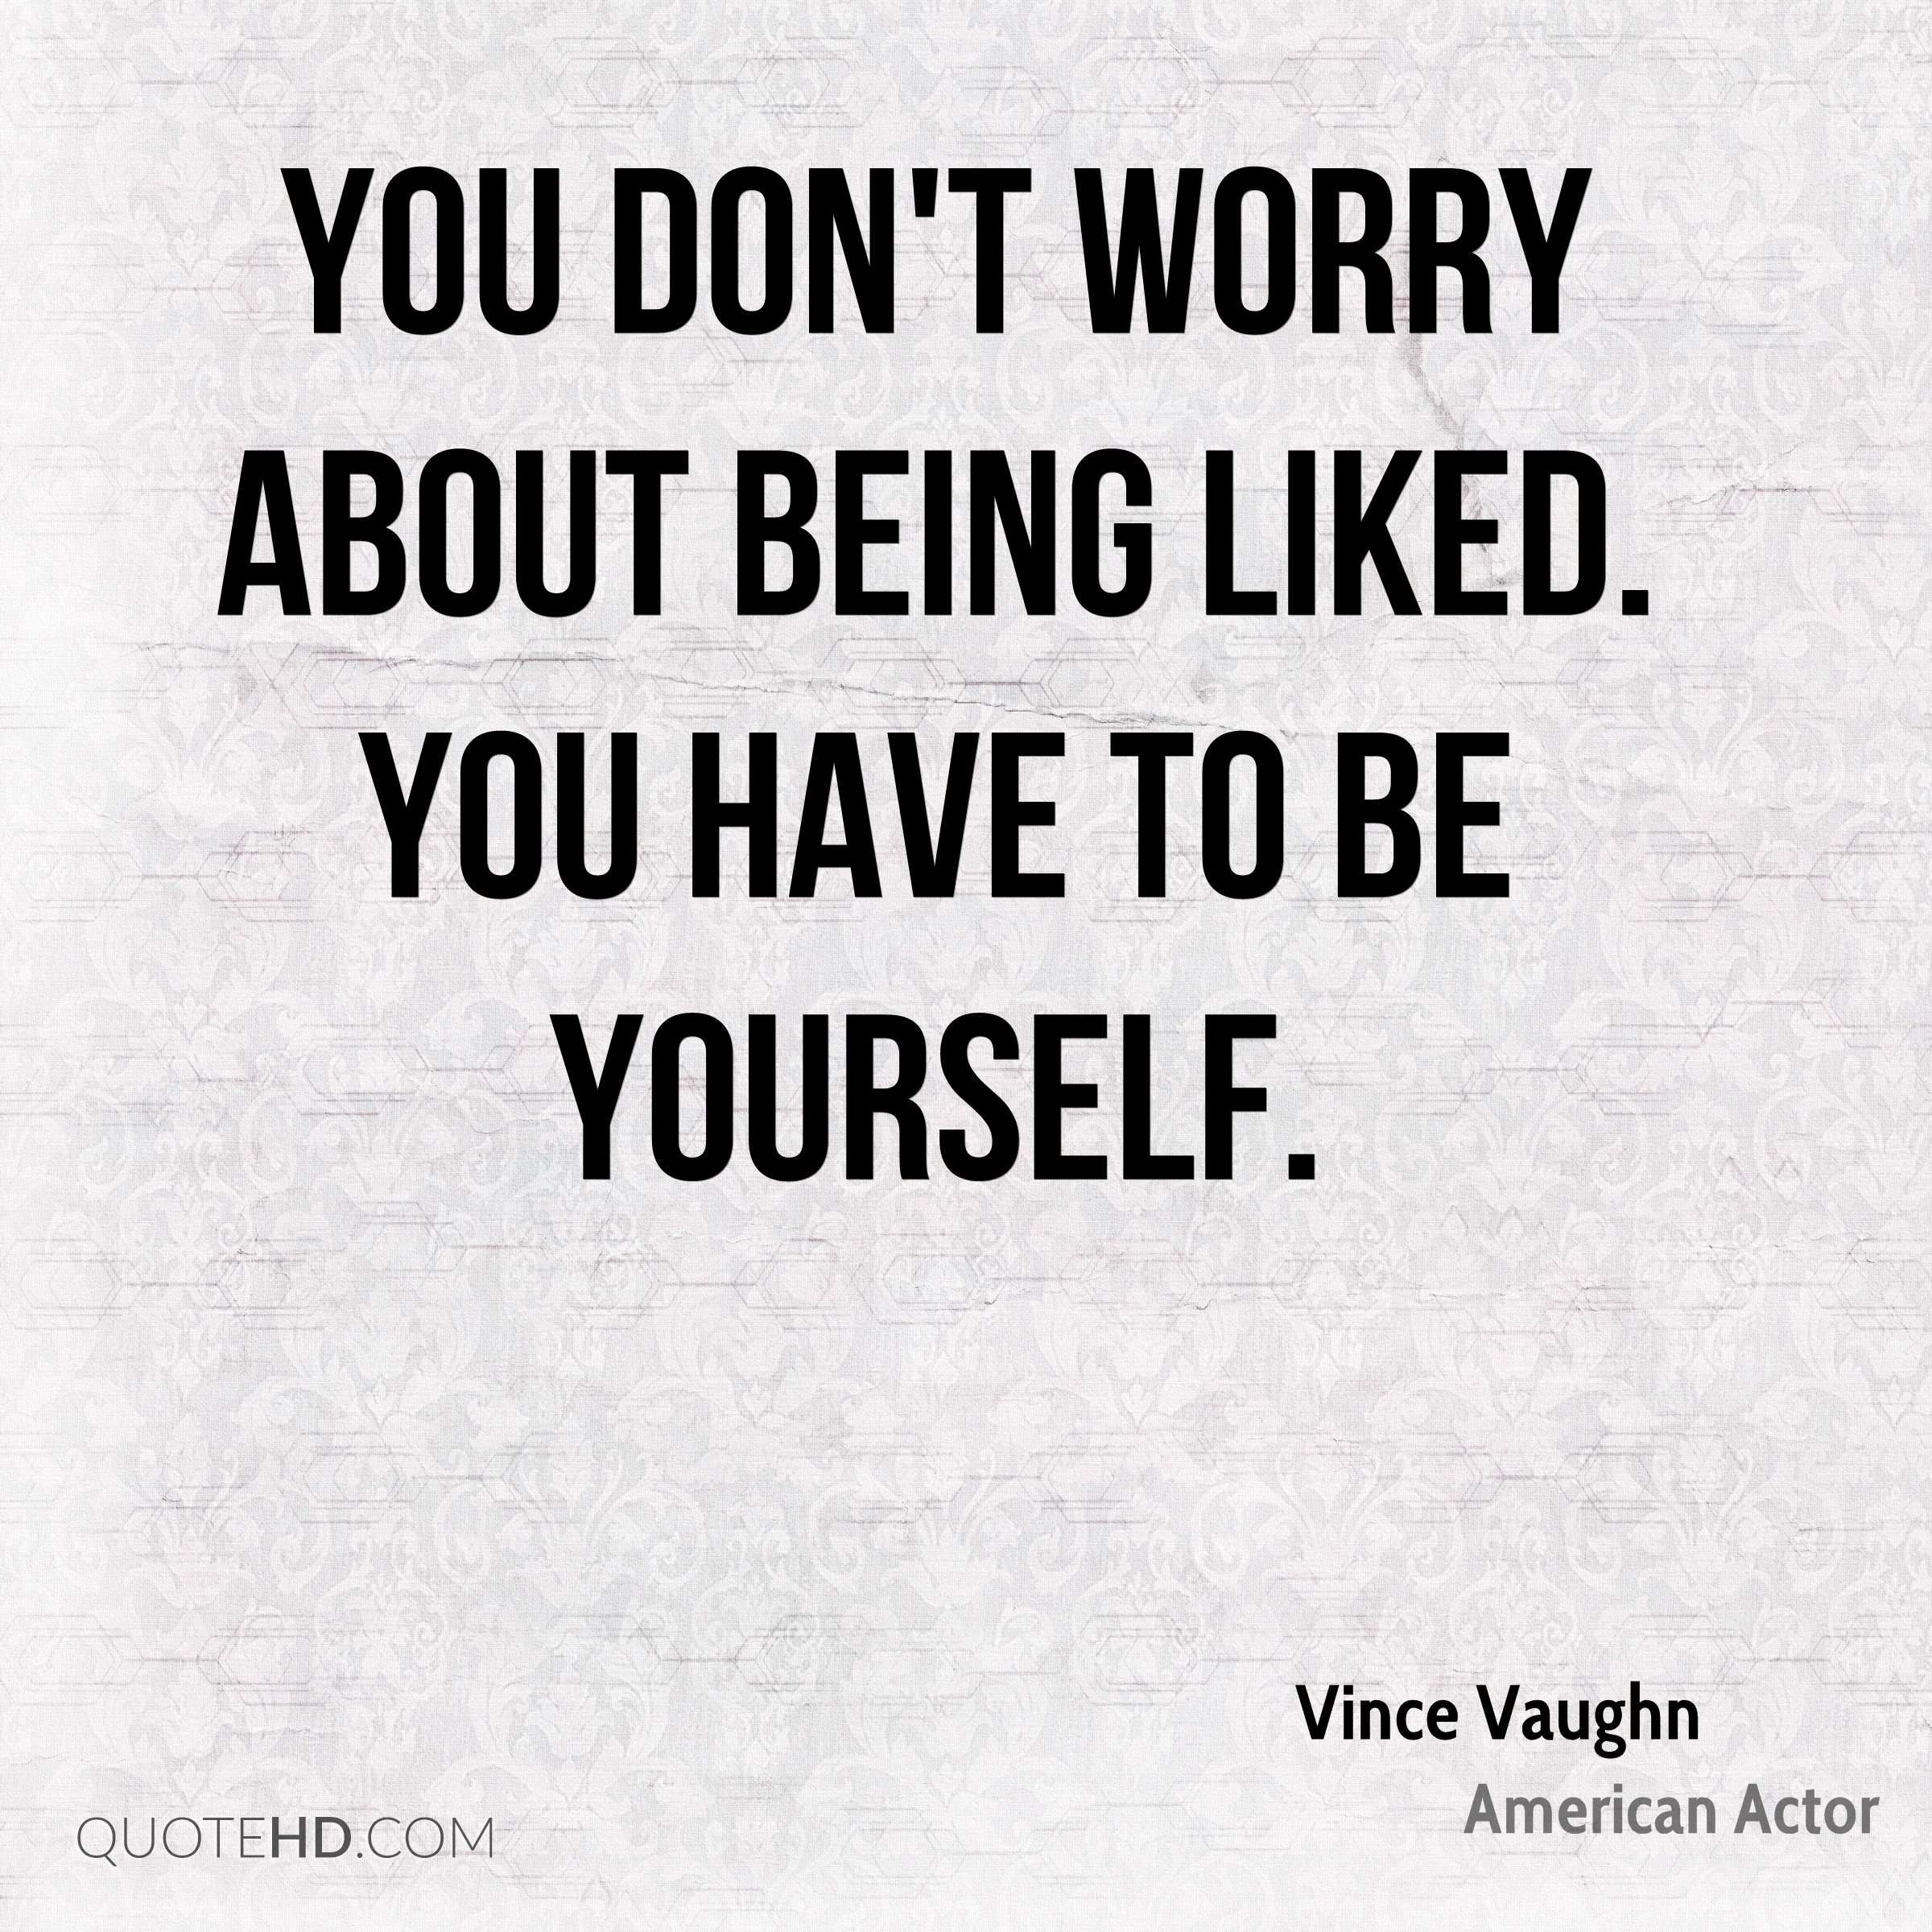 Vince Vaughn Quotes | QuoteHD